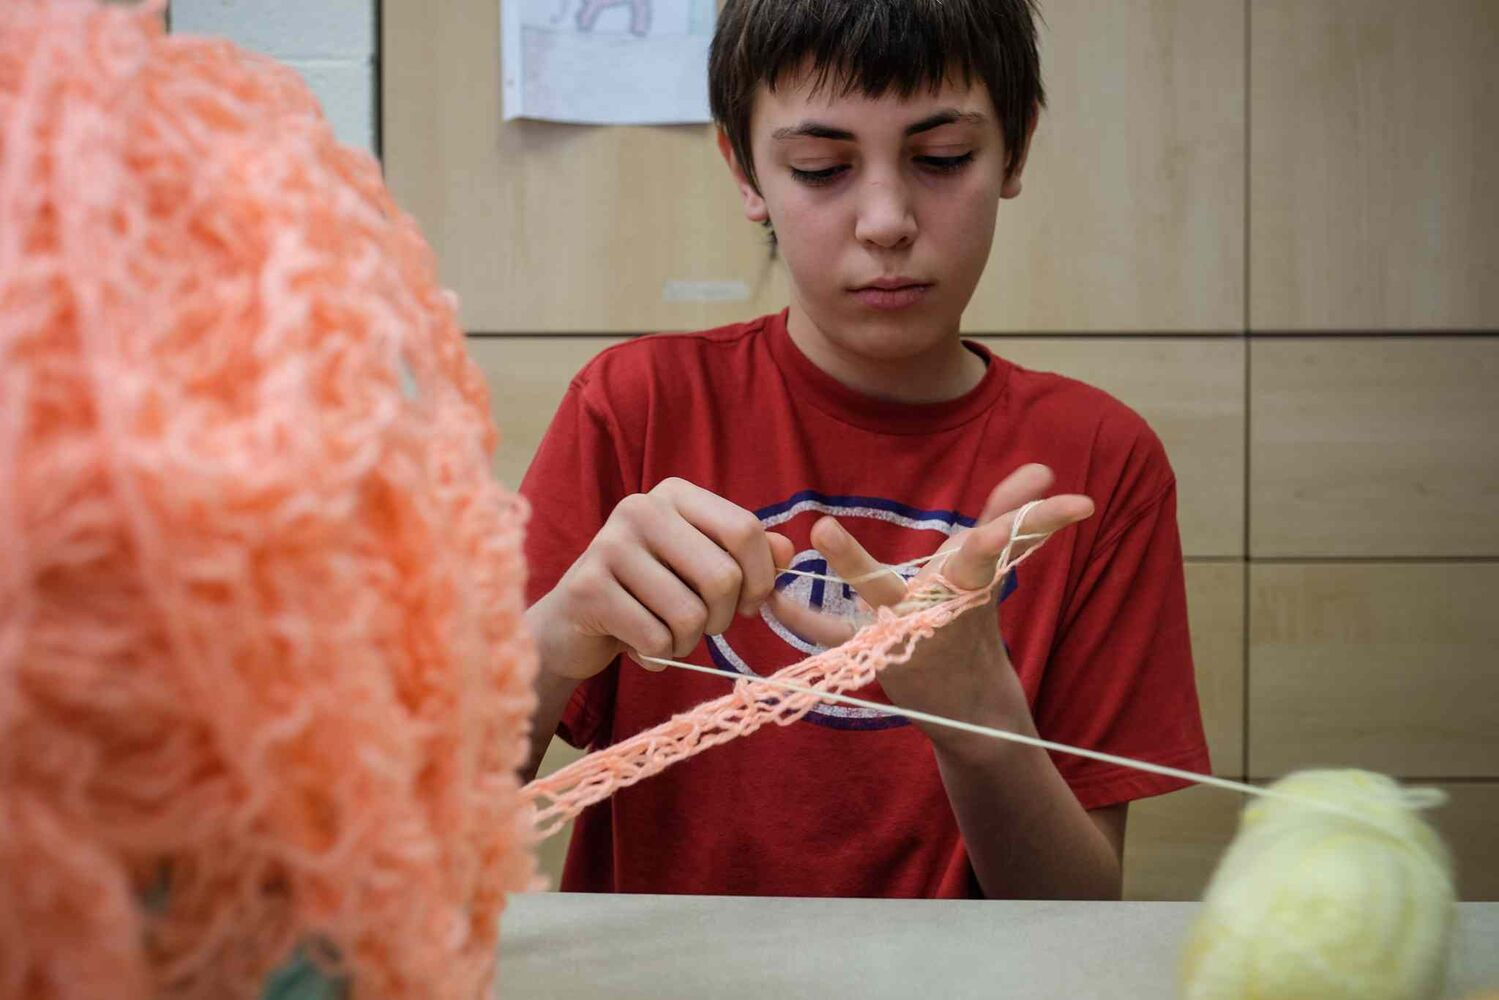 Adrien Wall, 11, displays his ball of finger-knitted yarn. He plans on knitting a six-kilometre length of the yarn in an effort to break a world record. He currently has about 396 metres of finger-knitted yarn.  (MIKE DEAL / WINNIPEG FREE PRESS)